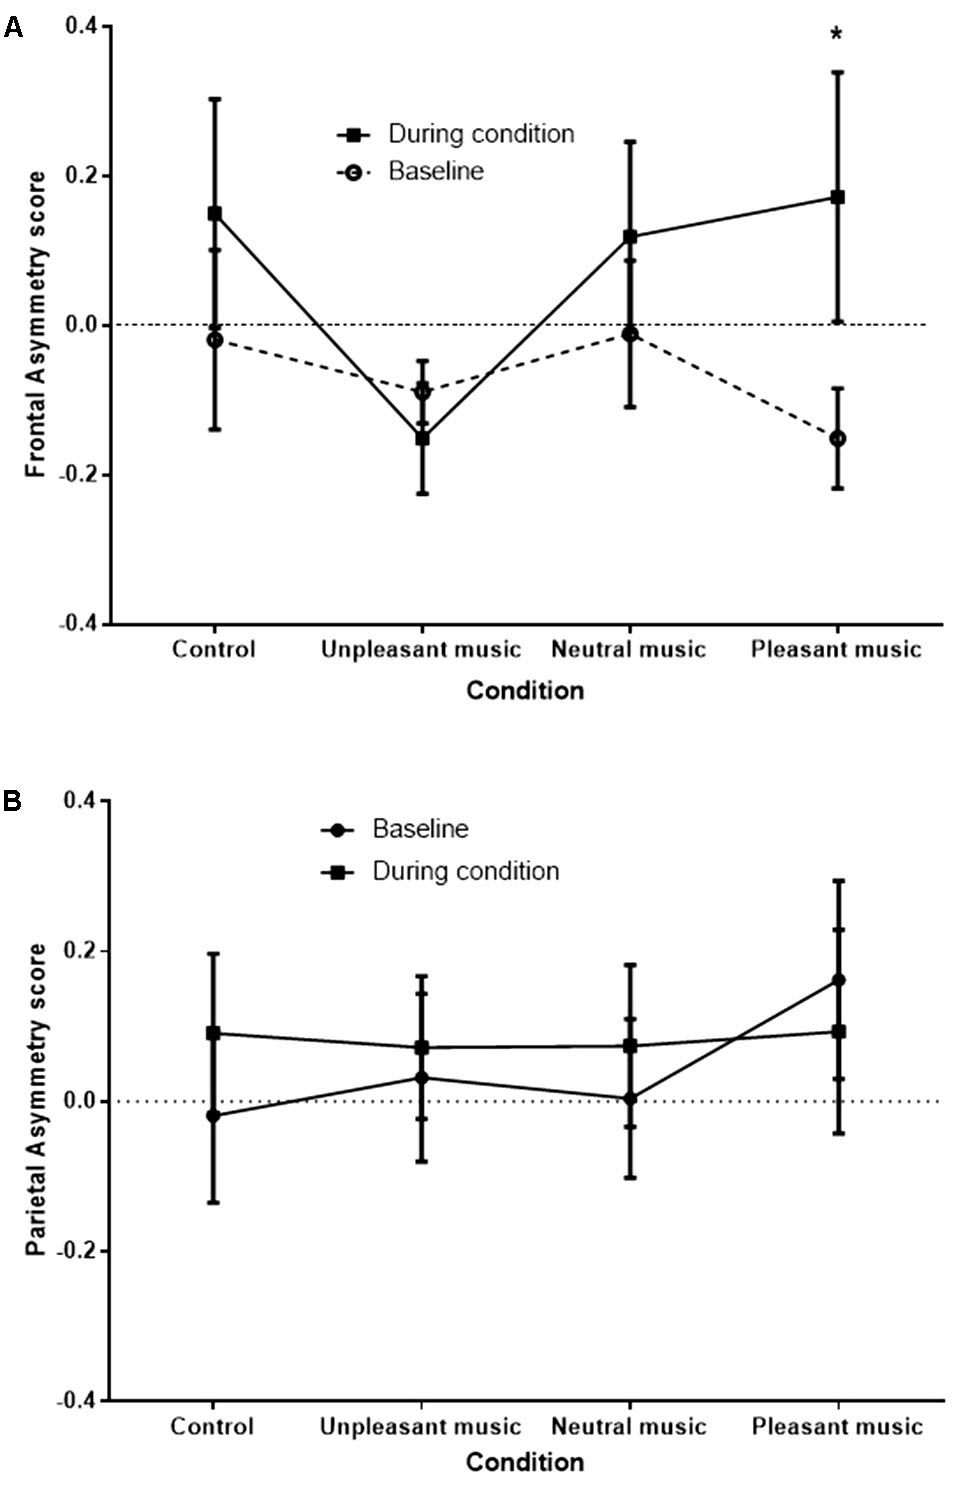 Frontiers | Emotional Responses to Music: Shifts in Frontal